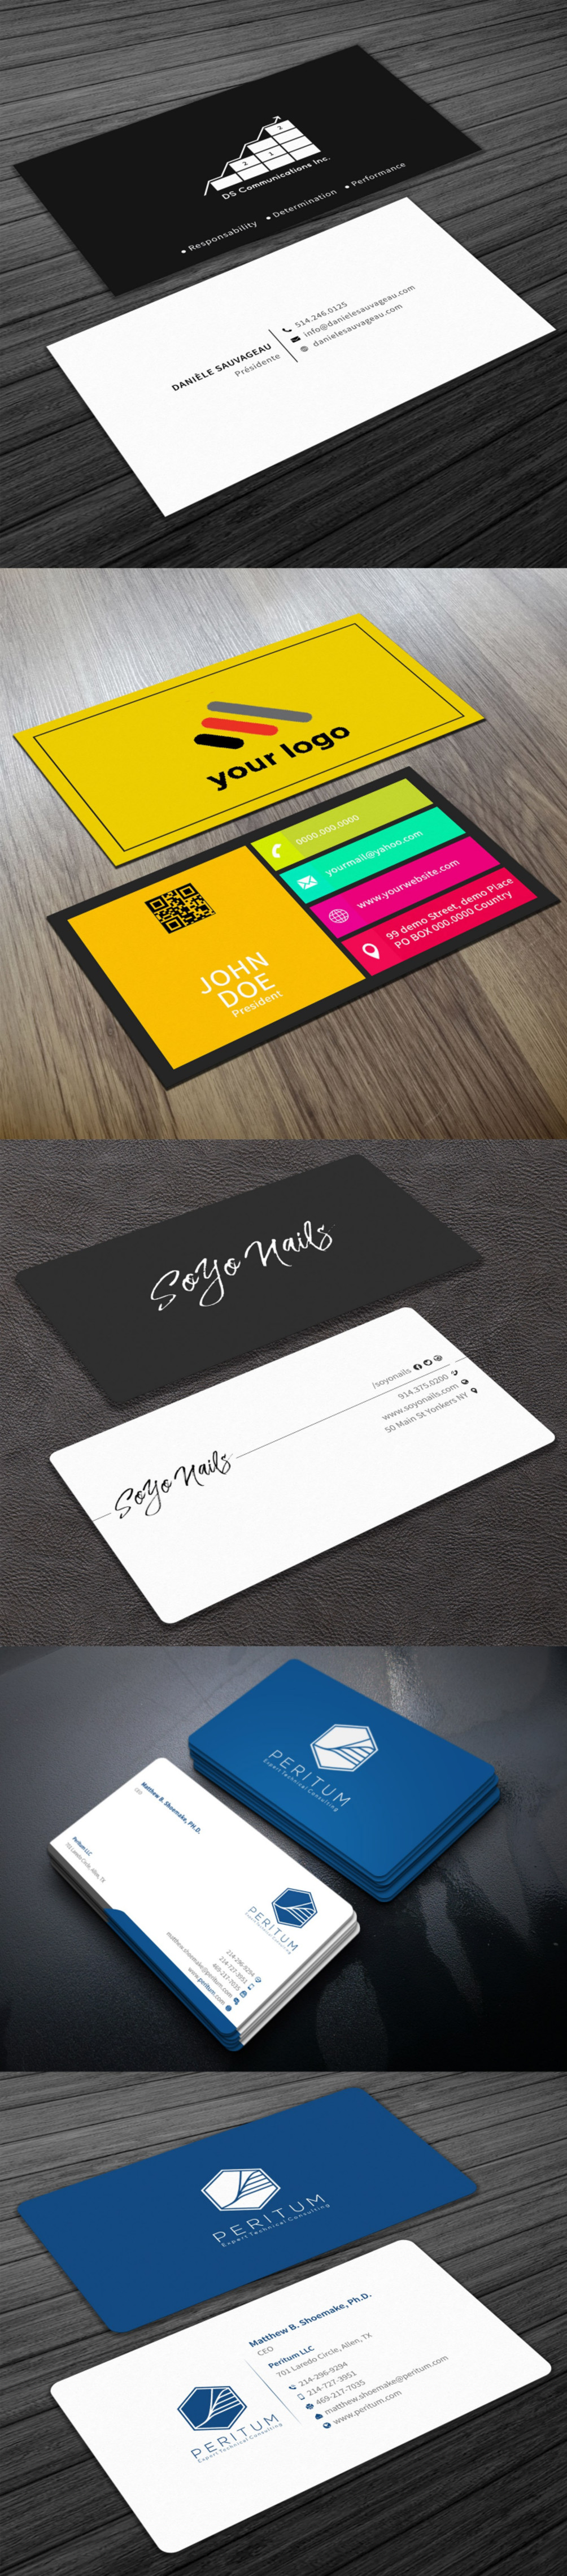 Design simple yet catchy business cards by shahshawon reheart Choice Image